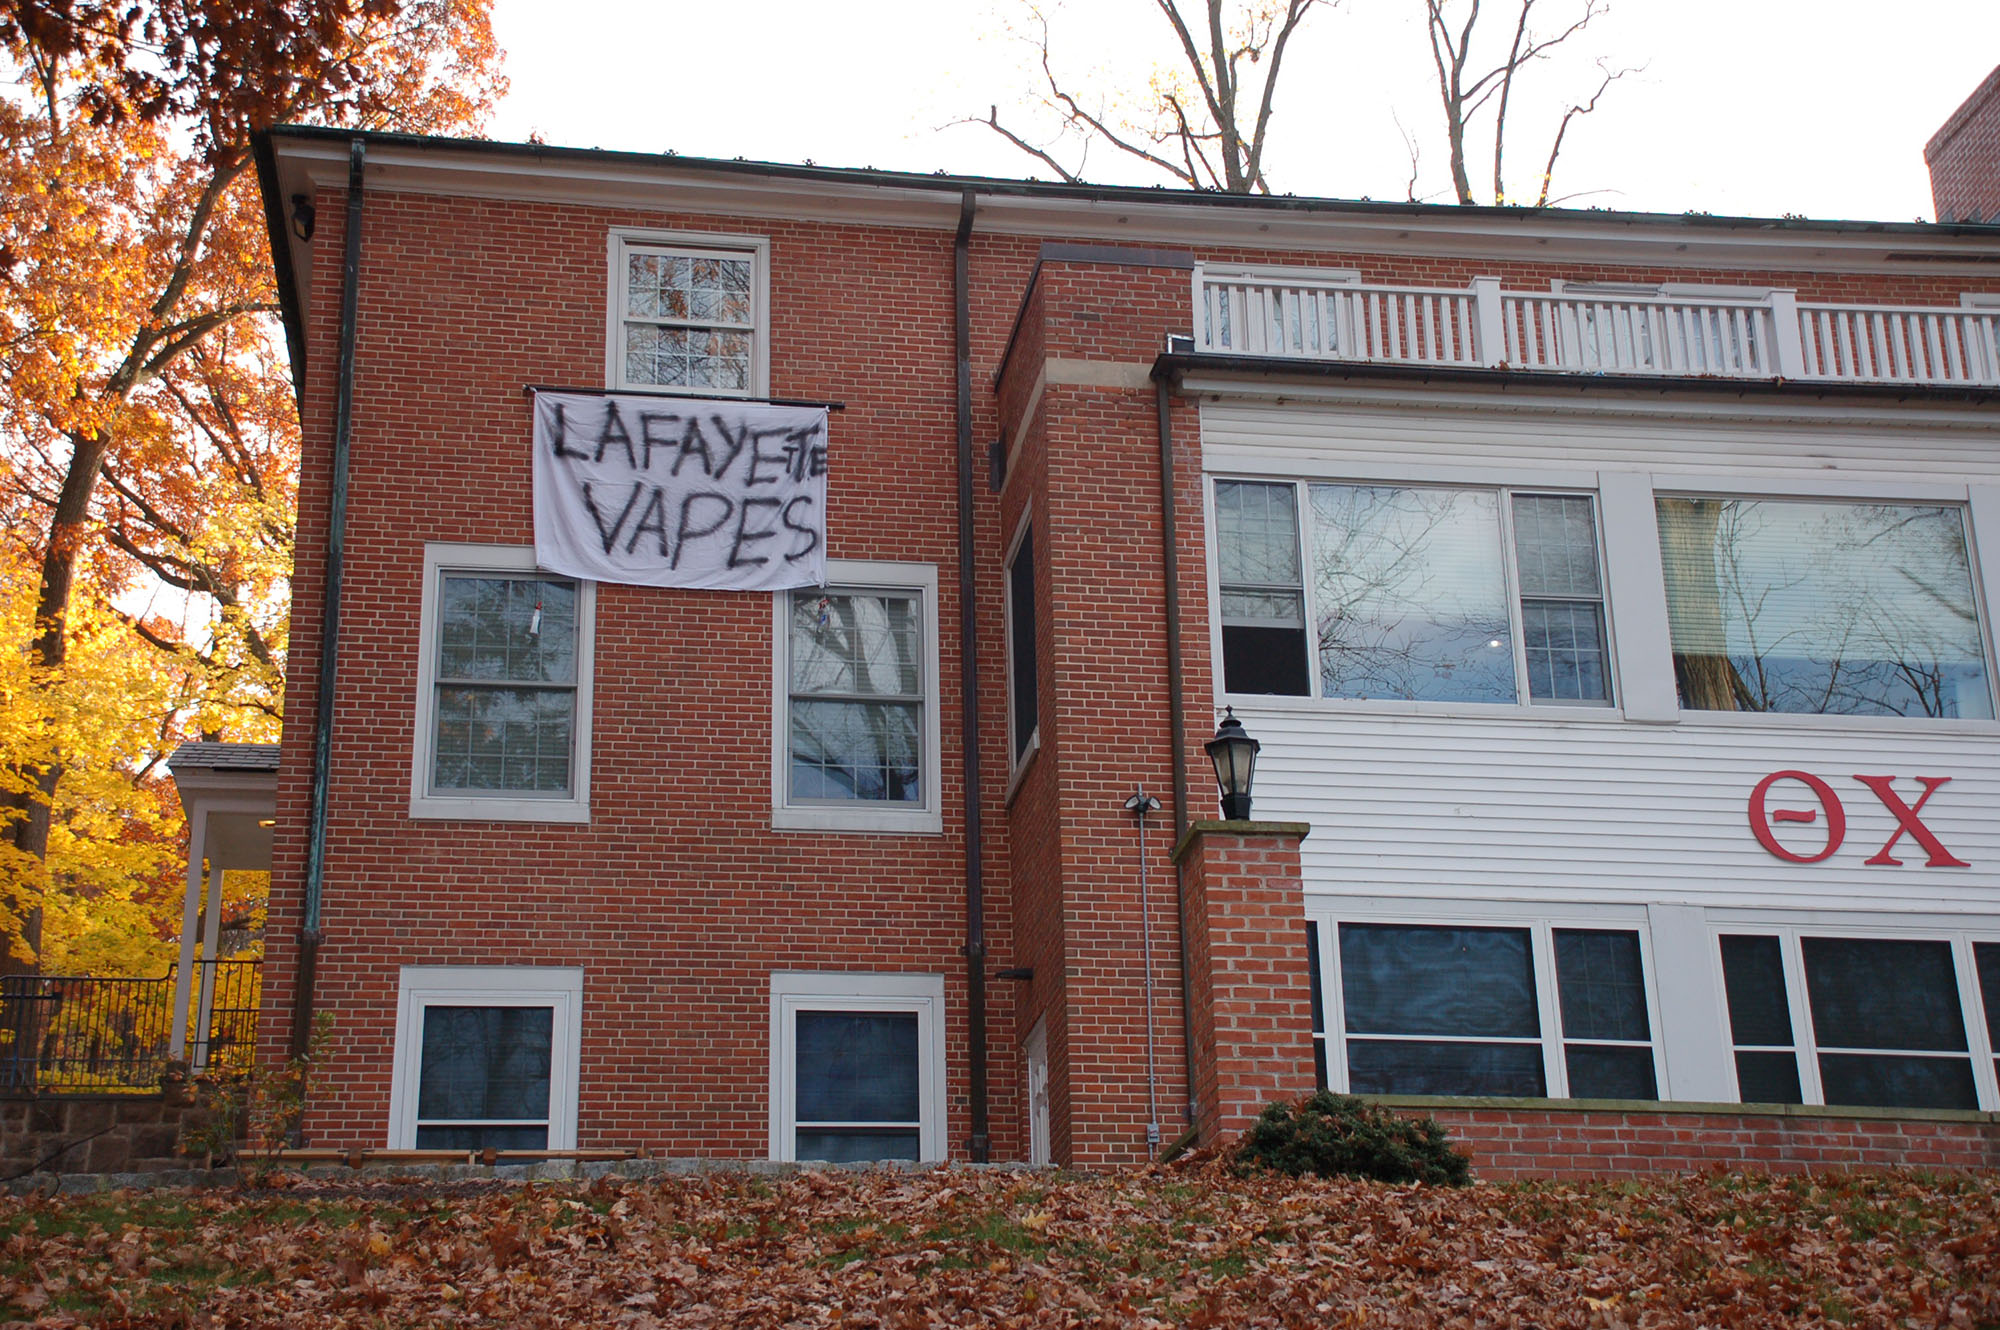 "A sign reading ""Lafayette vapes"" hangs on the Theta Chi fraternity house on Nov. 15, 2016. The banners are one of many campus spirit traditions that take place during Lehigh-Lafayette week. (Samantha Tomaszewski/B&W Staff)"